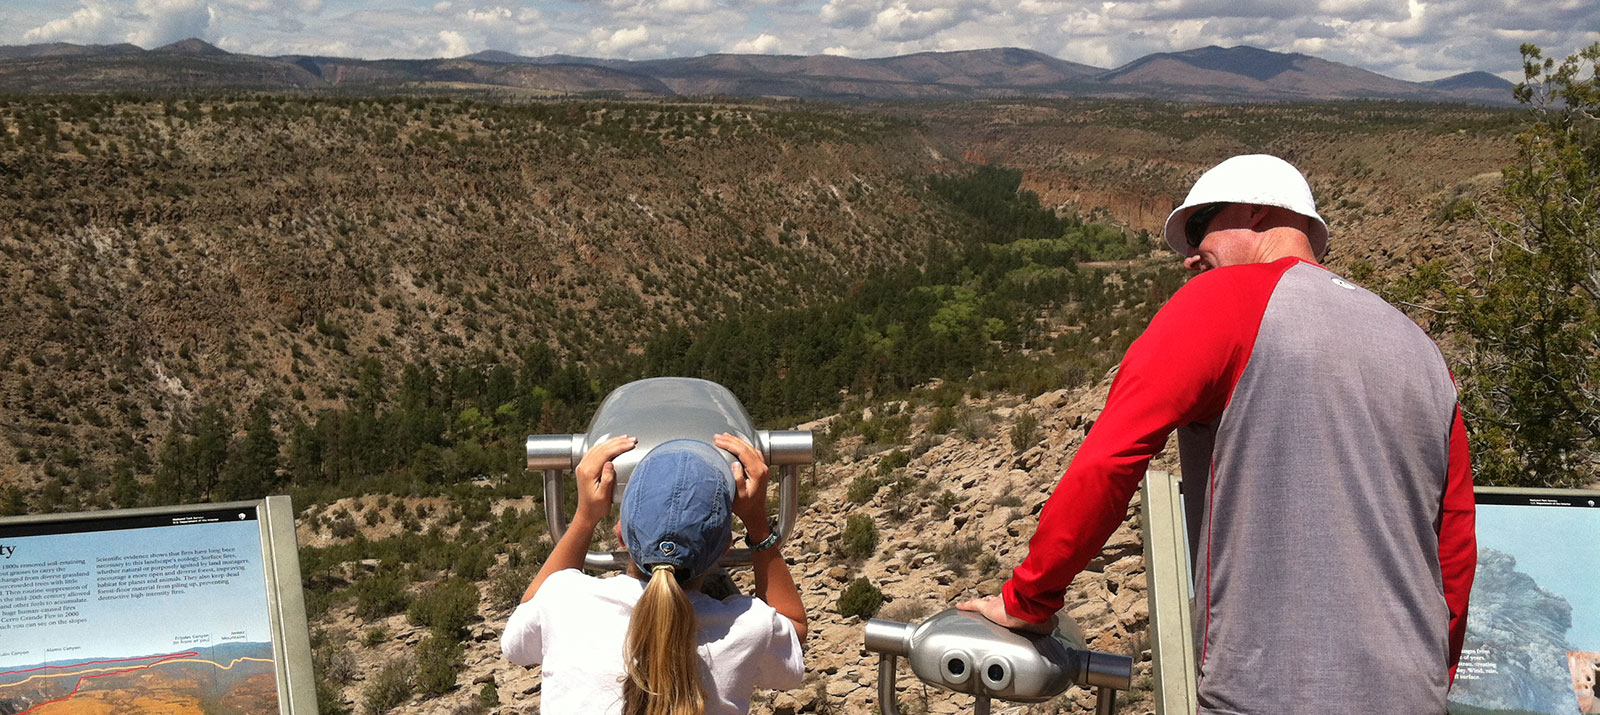 Families Enjoying Bandelier